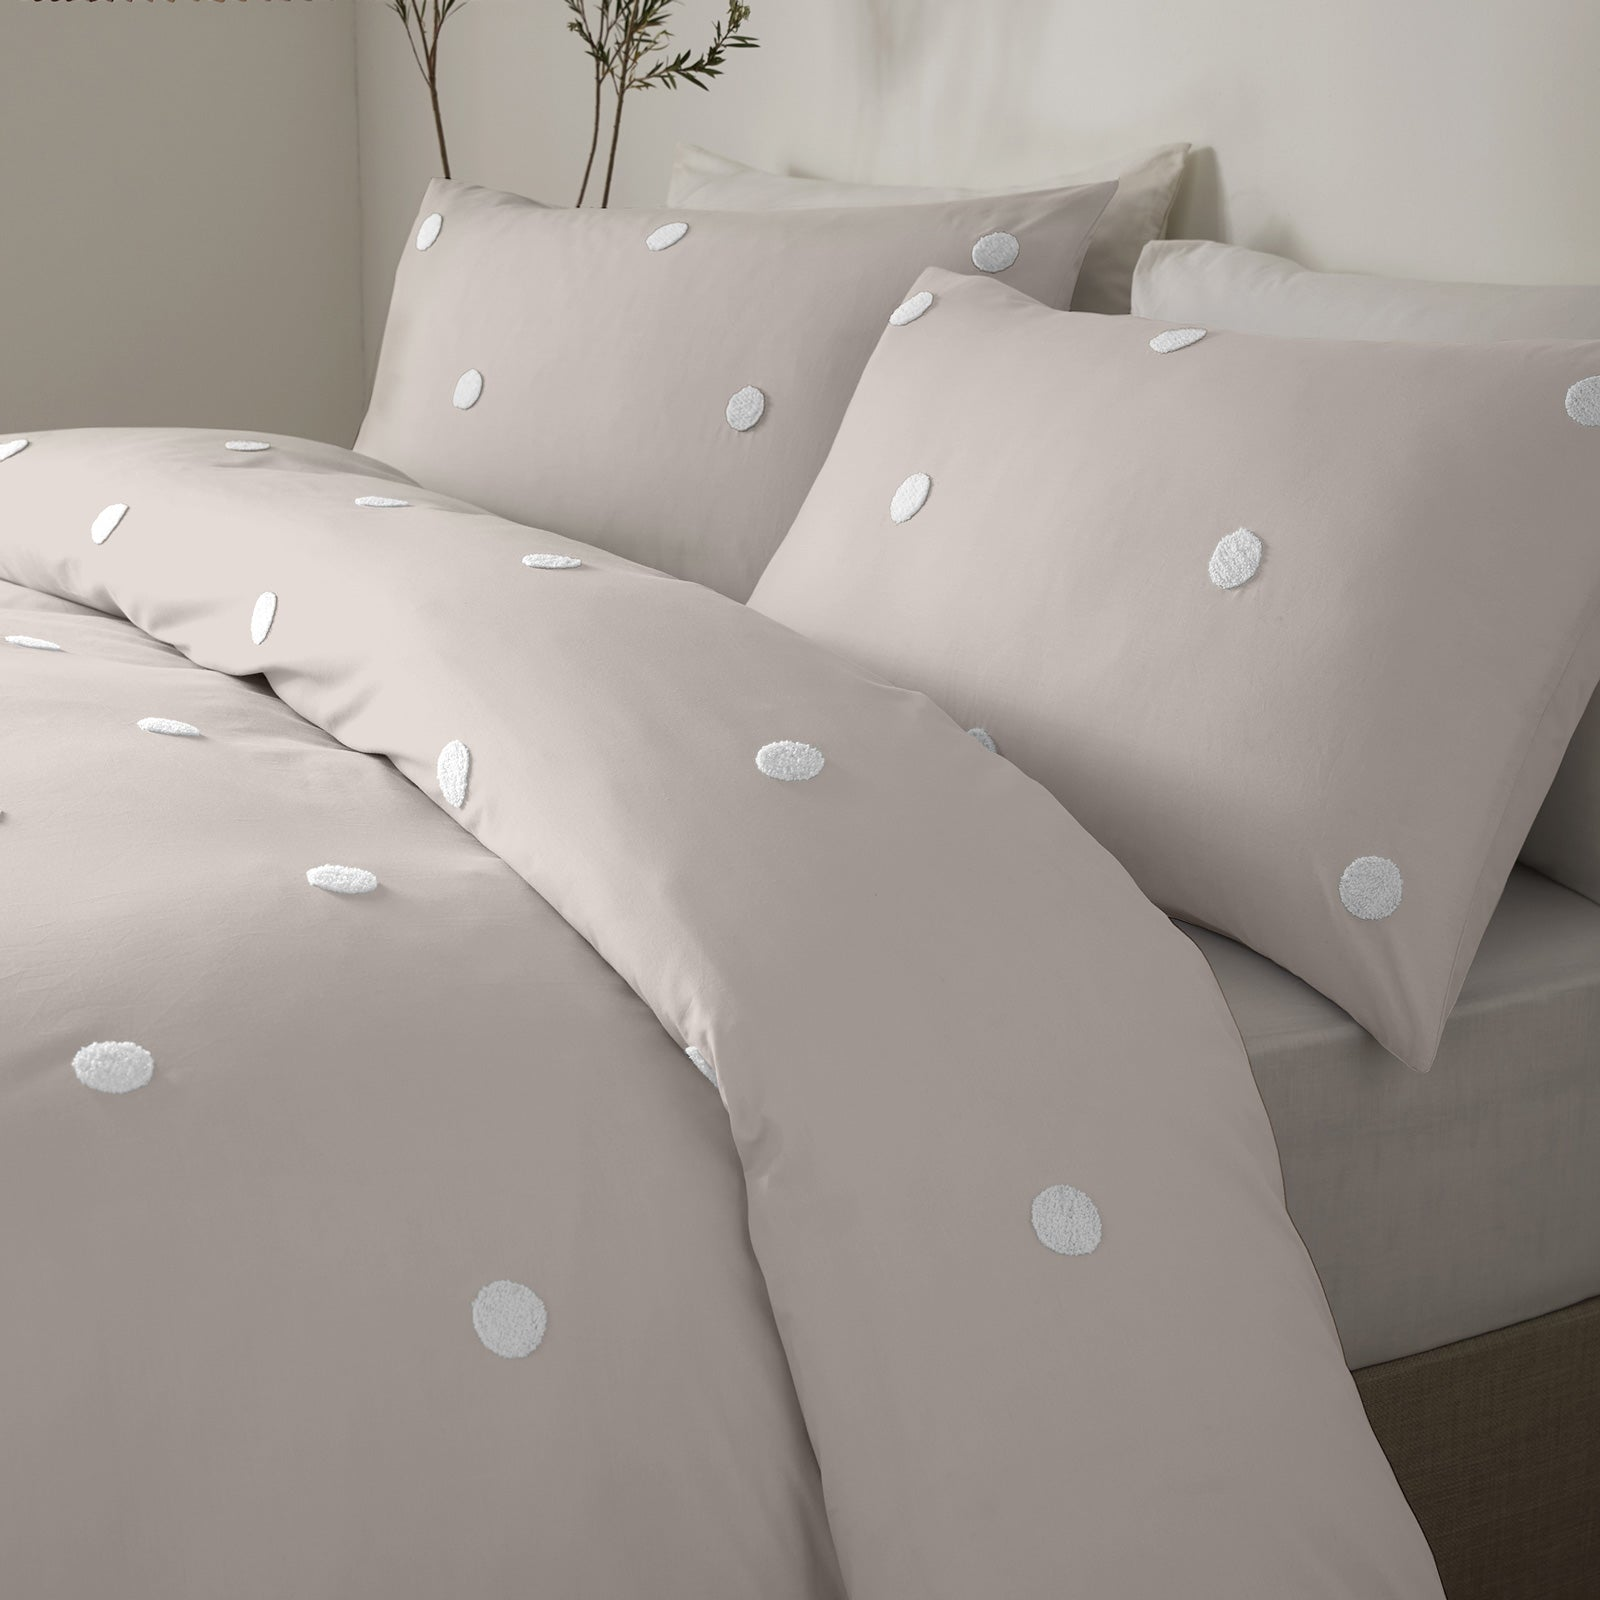 Dot Garden Tufted Spot 100% Cotton Linen Duvet Cover Set -  - Ideal Textiles